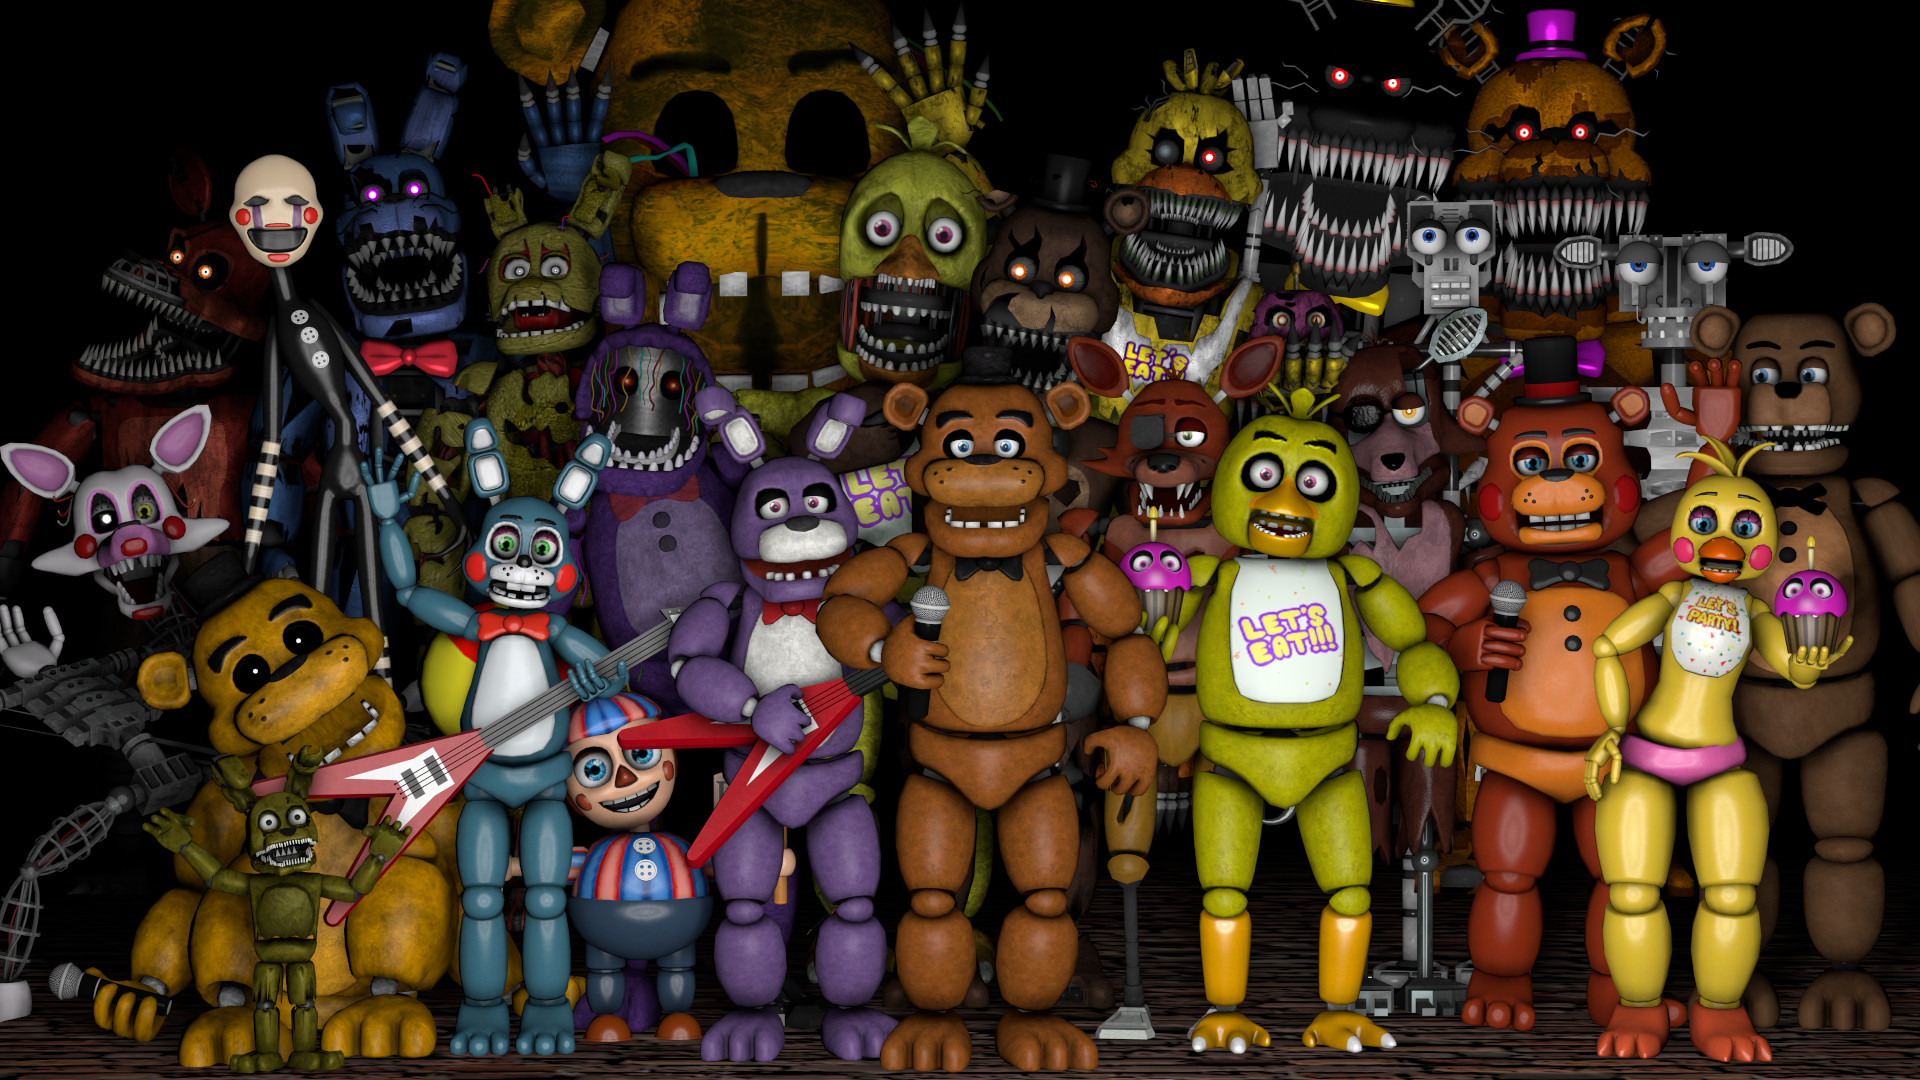 1920x1080 ... Five Nights at Freddy's Thank You Poster by RobinOlsen2011